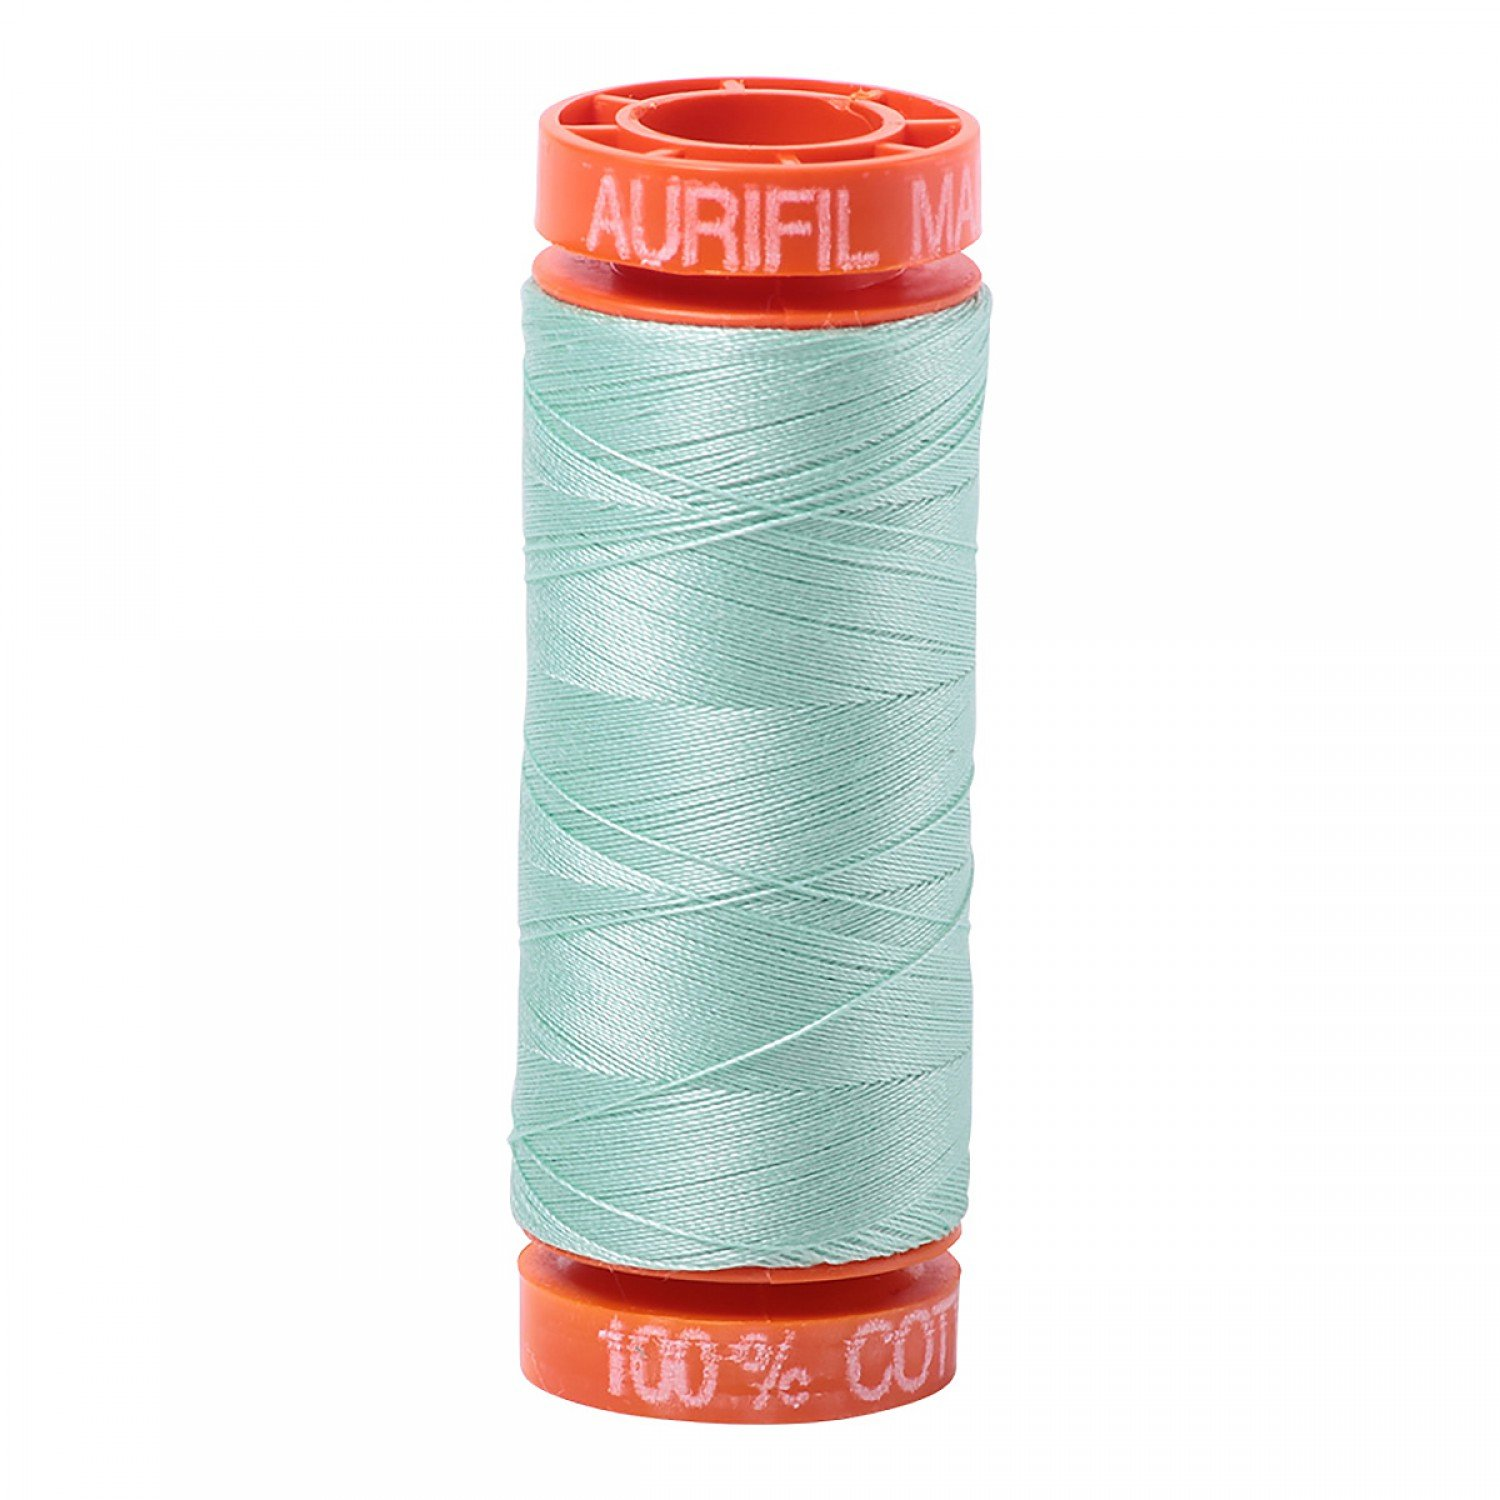 50 wt Aurifil - AS2830 - Mint Ice*